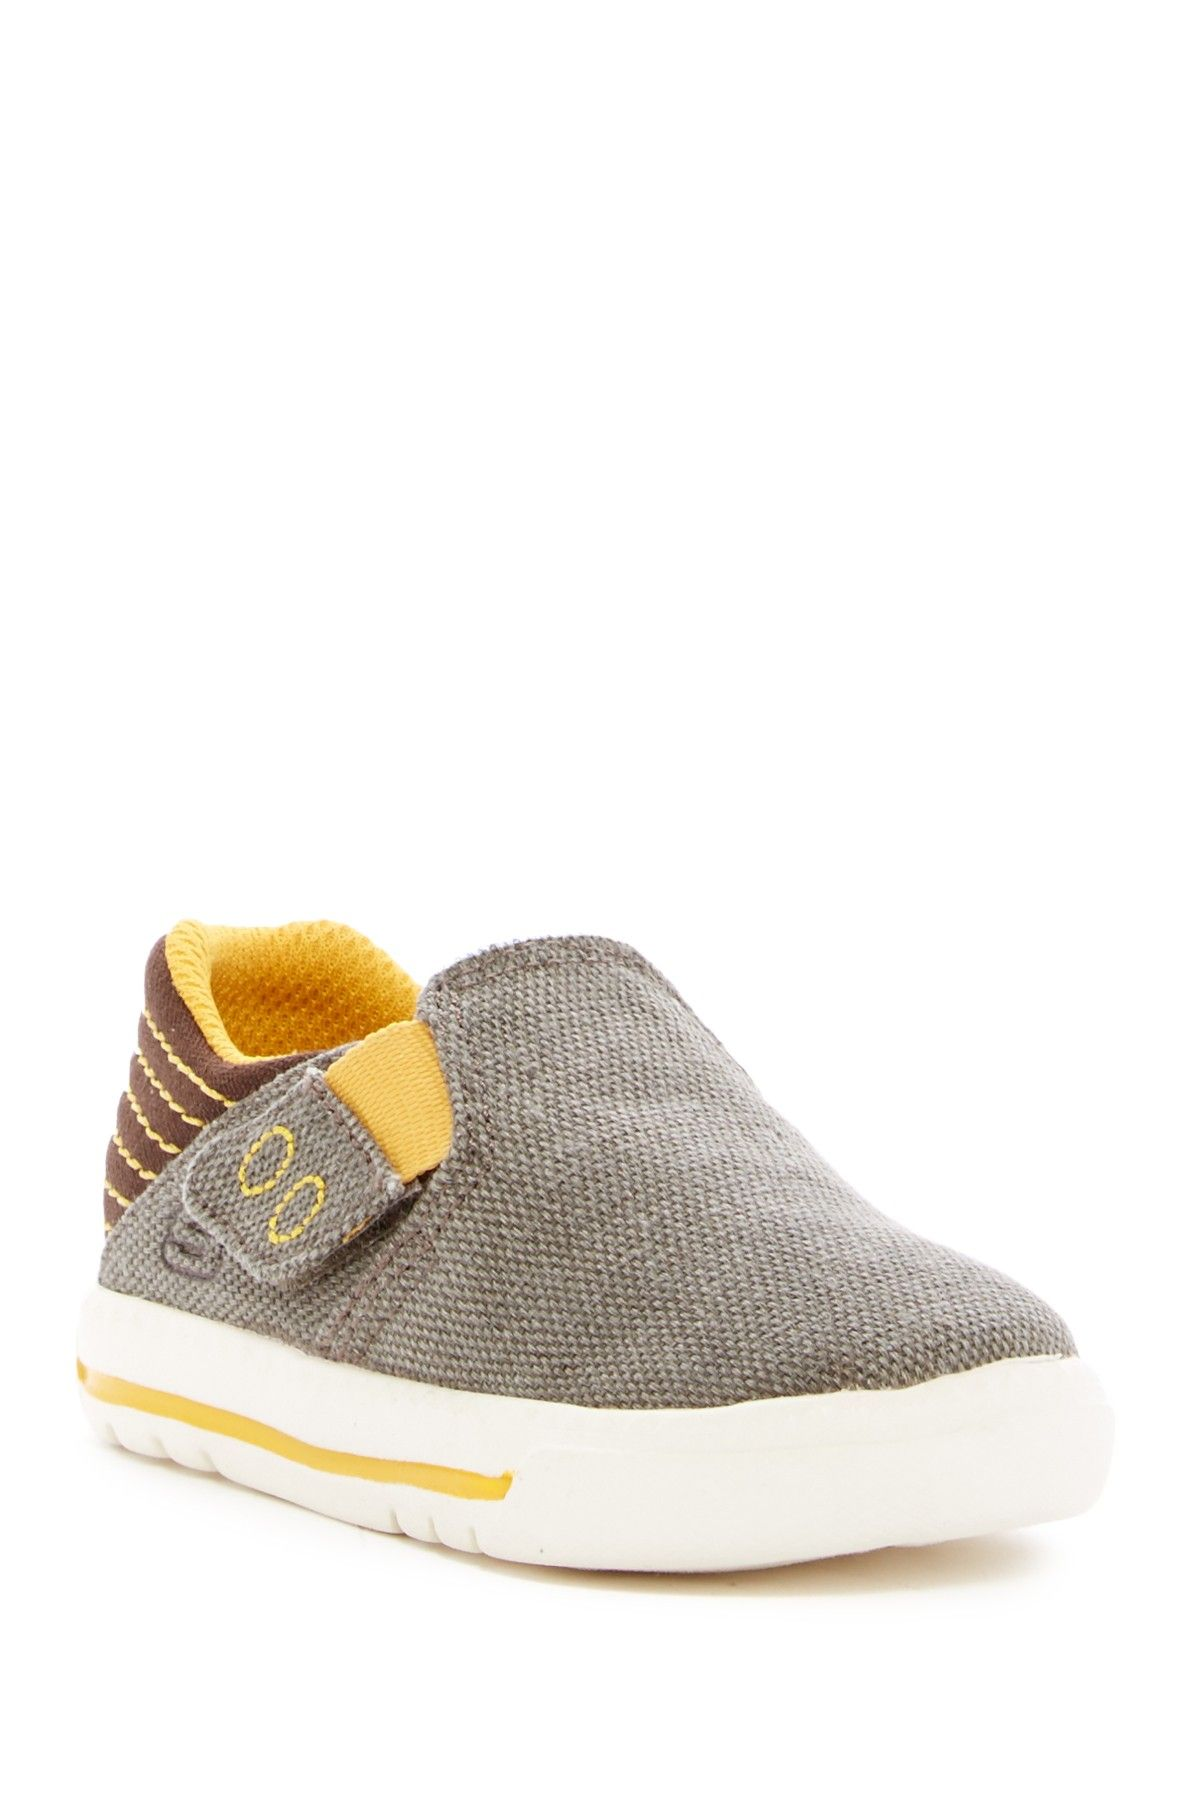 Skechers Lil Lad Studdly Sneakers Brown Boy's Shoes